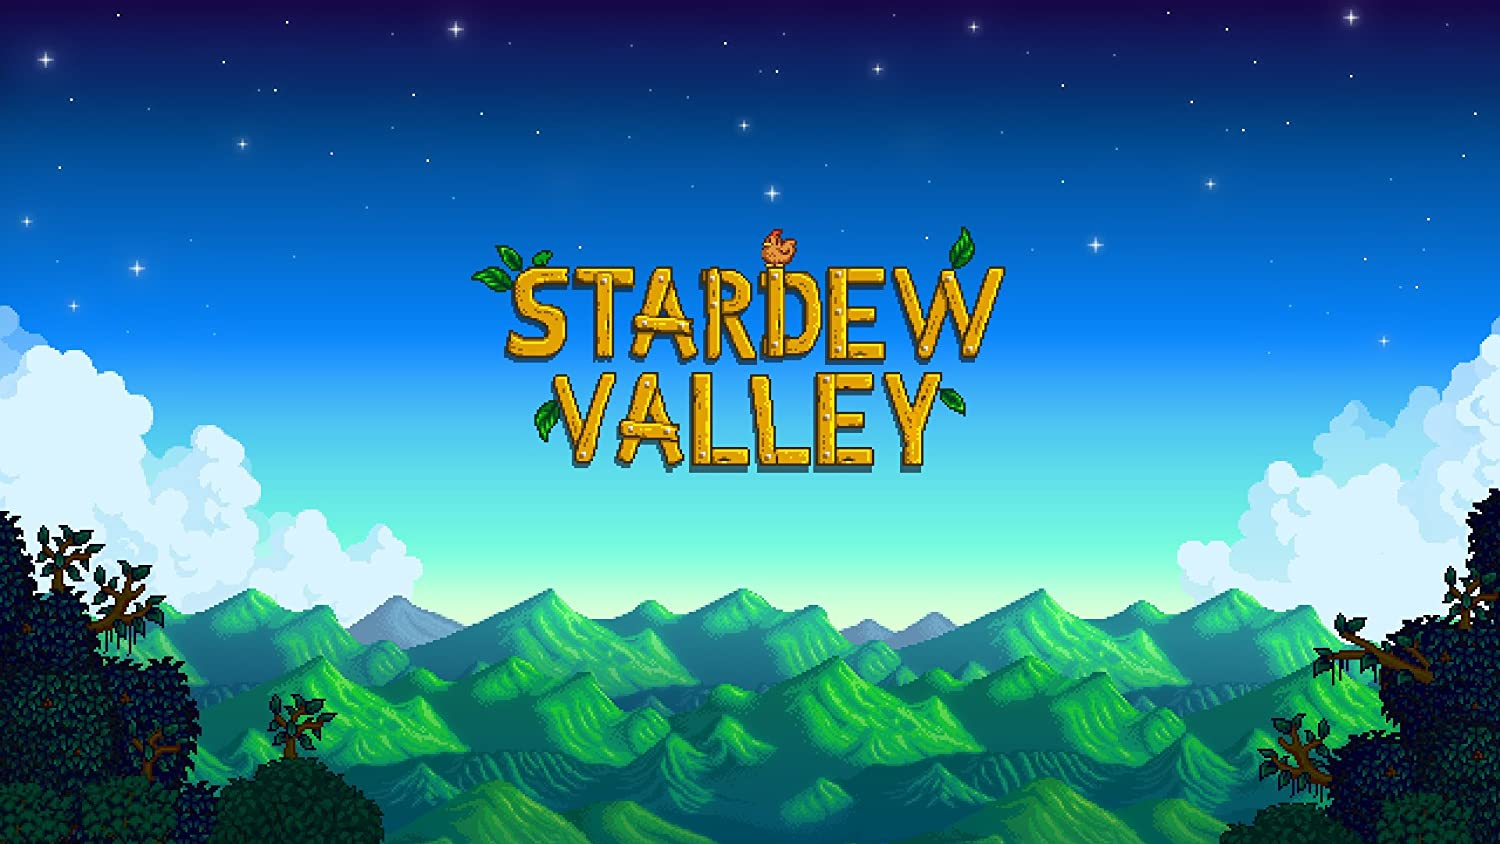 dating whole town stardew valley